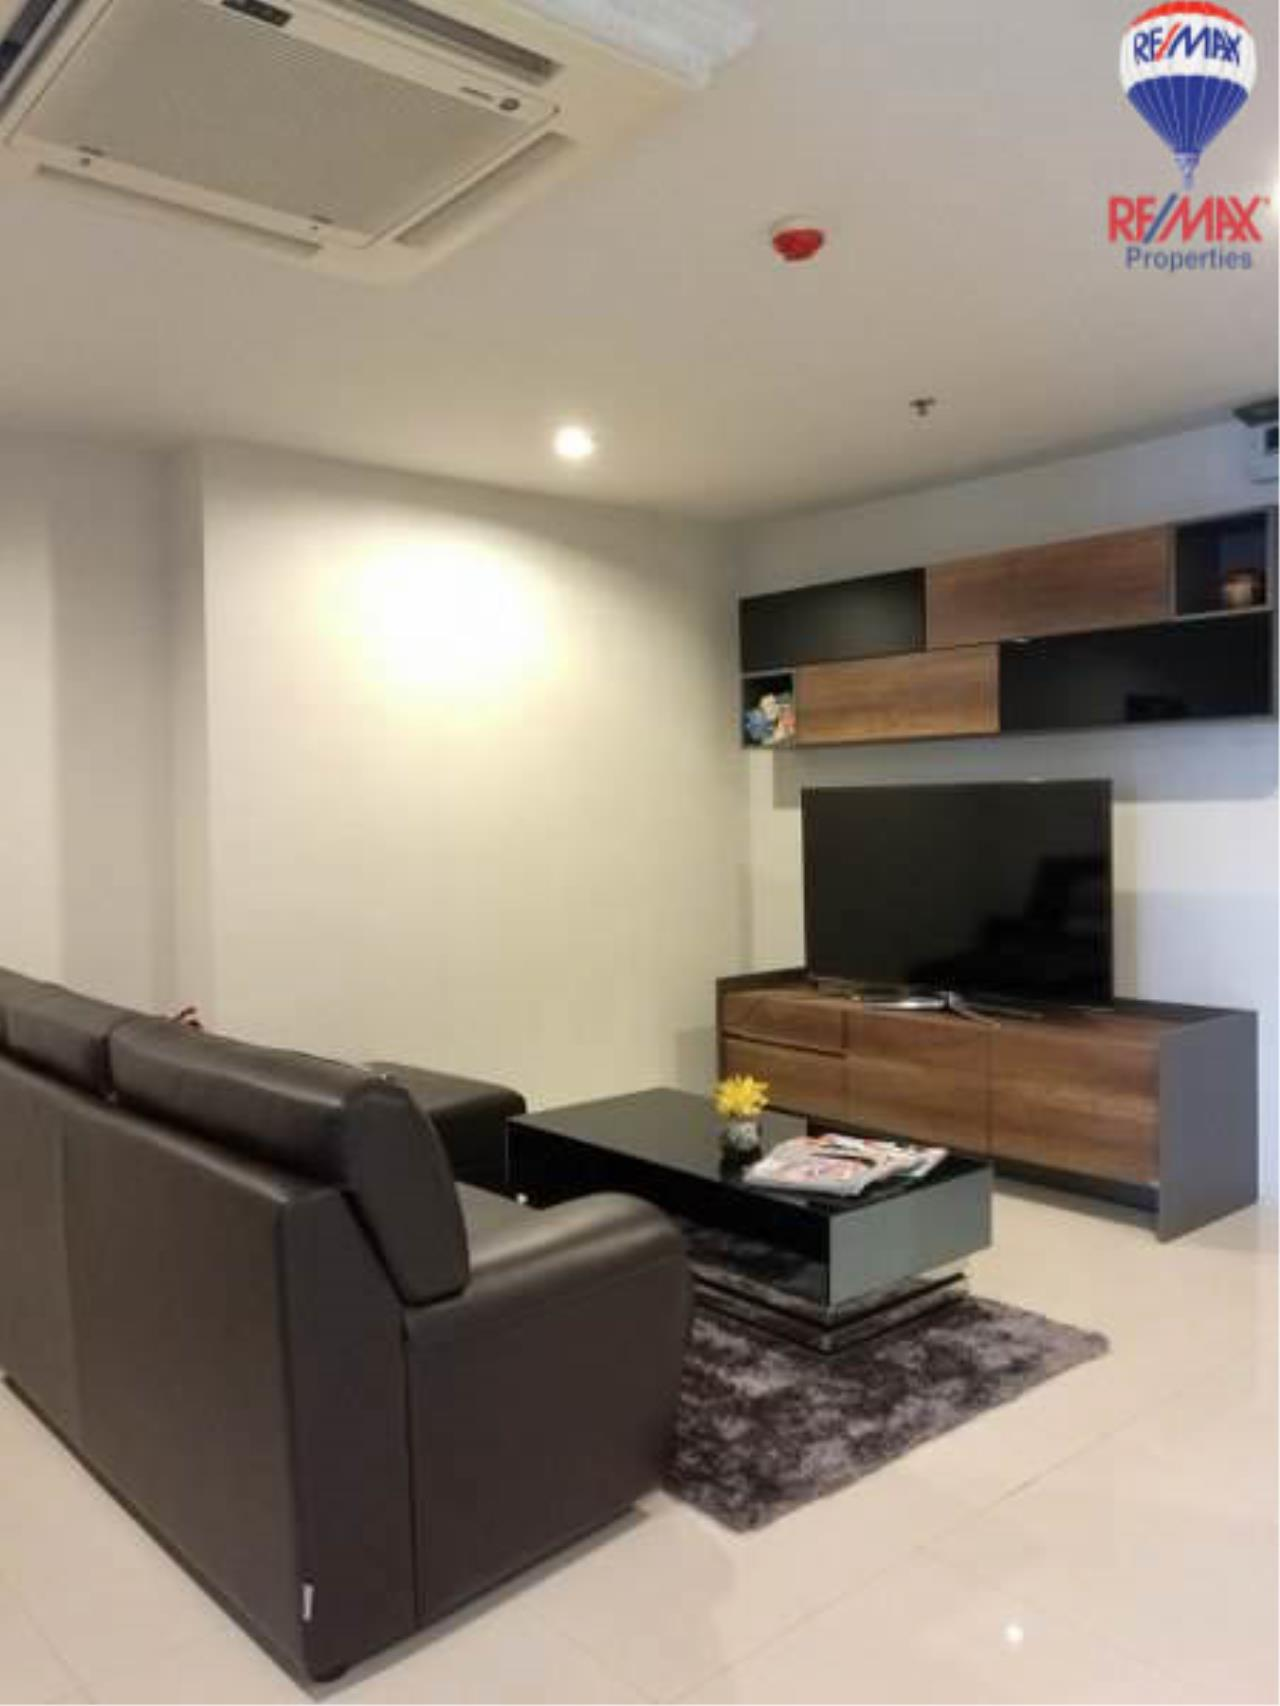 RE/MAX Properties Agency's 1 Bedroom 60 Sq.M. for sale in Sukhumvit Living Town 4